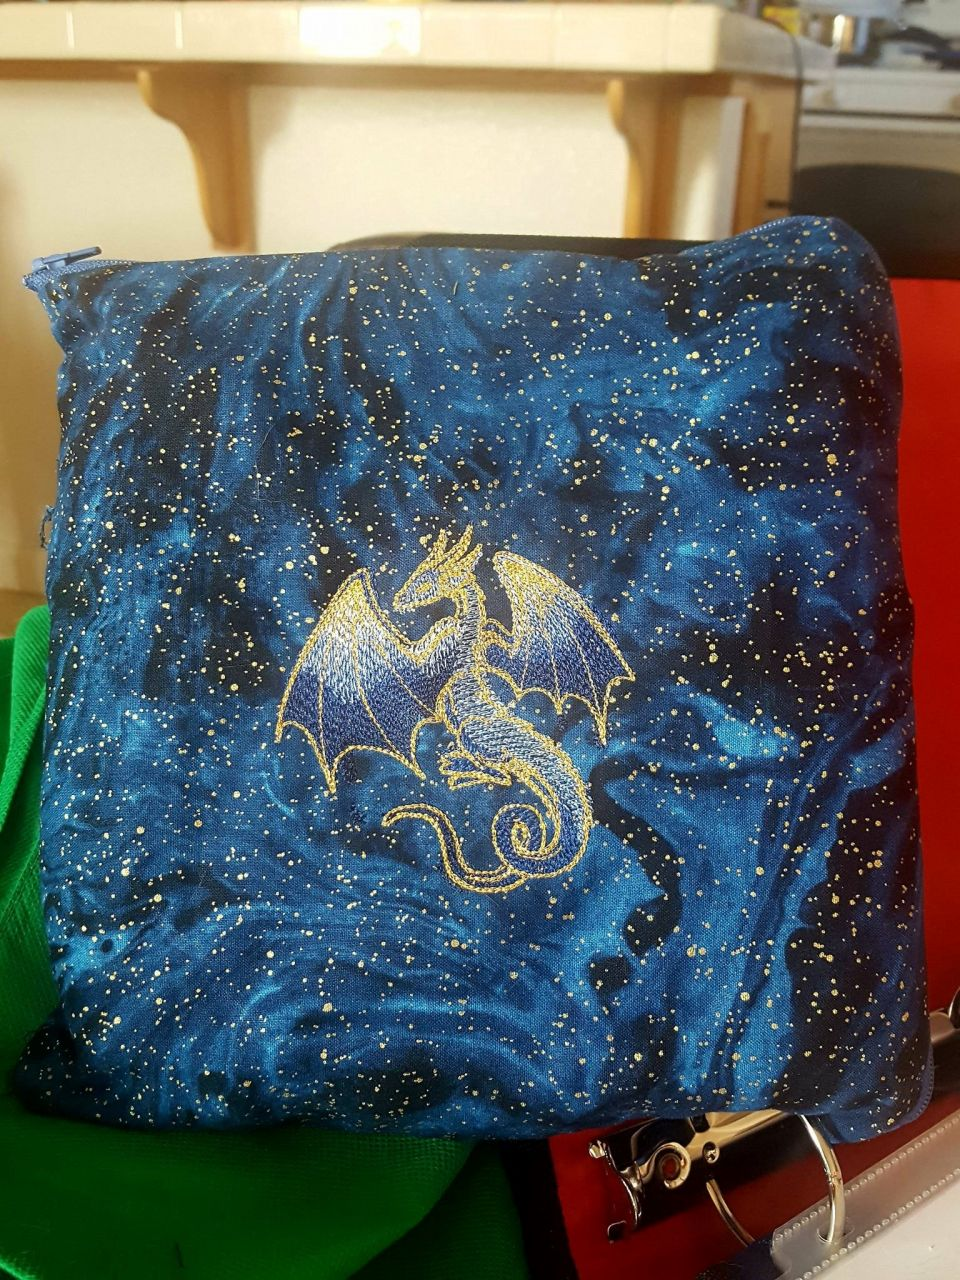 *squee* I'm on a completion high! I made this bag to carry my cross stitch in a little more safely to and from work. The dragon is intended to look like a constellation emerging from the stars.  I didn't have quite the right blues to pull that off the way I wanted but is pretty. Her linework is done in metallic gold to match the stars behind her.  I want to go back for more fabric lol.